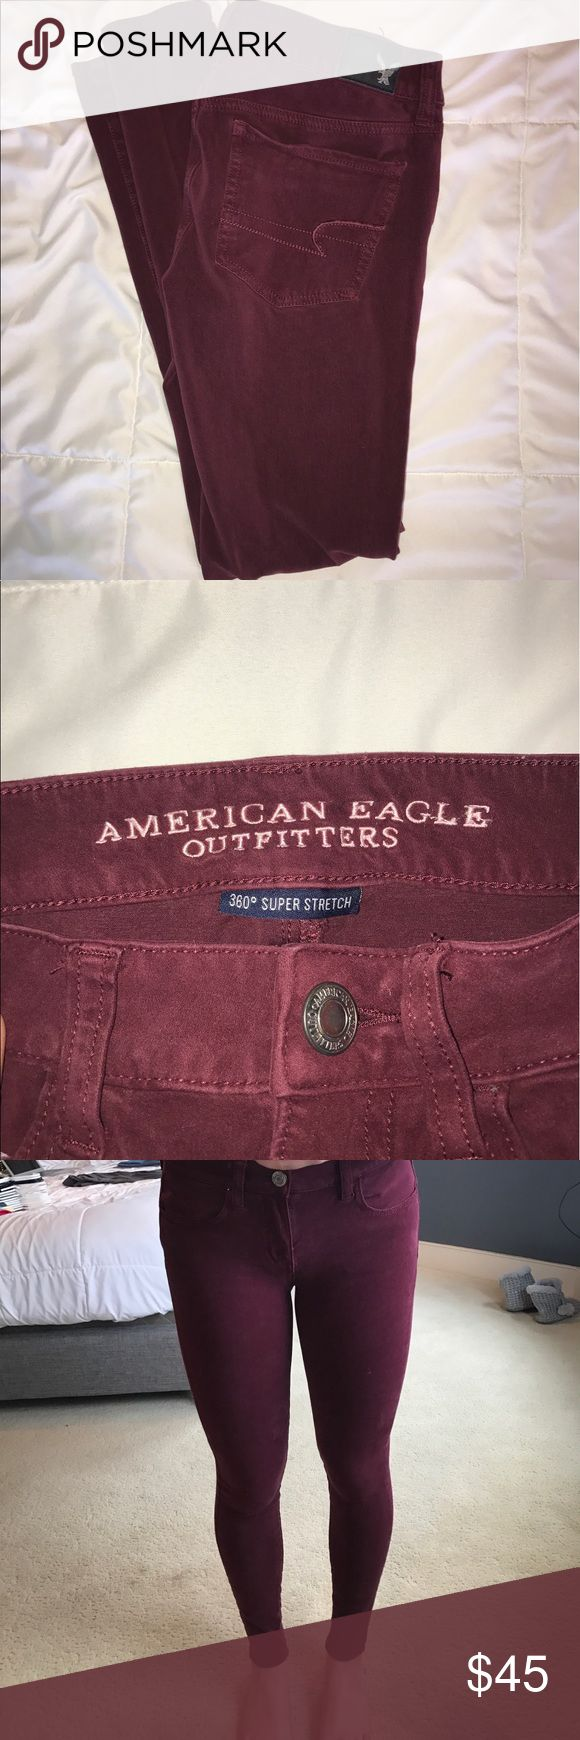 Burgundy/maroon super skinny jeans Very soft super skinny jeans in a maroon/burgundy color from American Eagle Outfitters. In good condition! American Eagle Outfitters Jeans Skinny